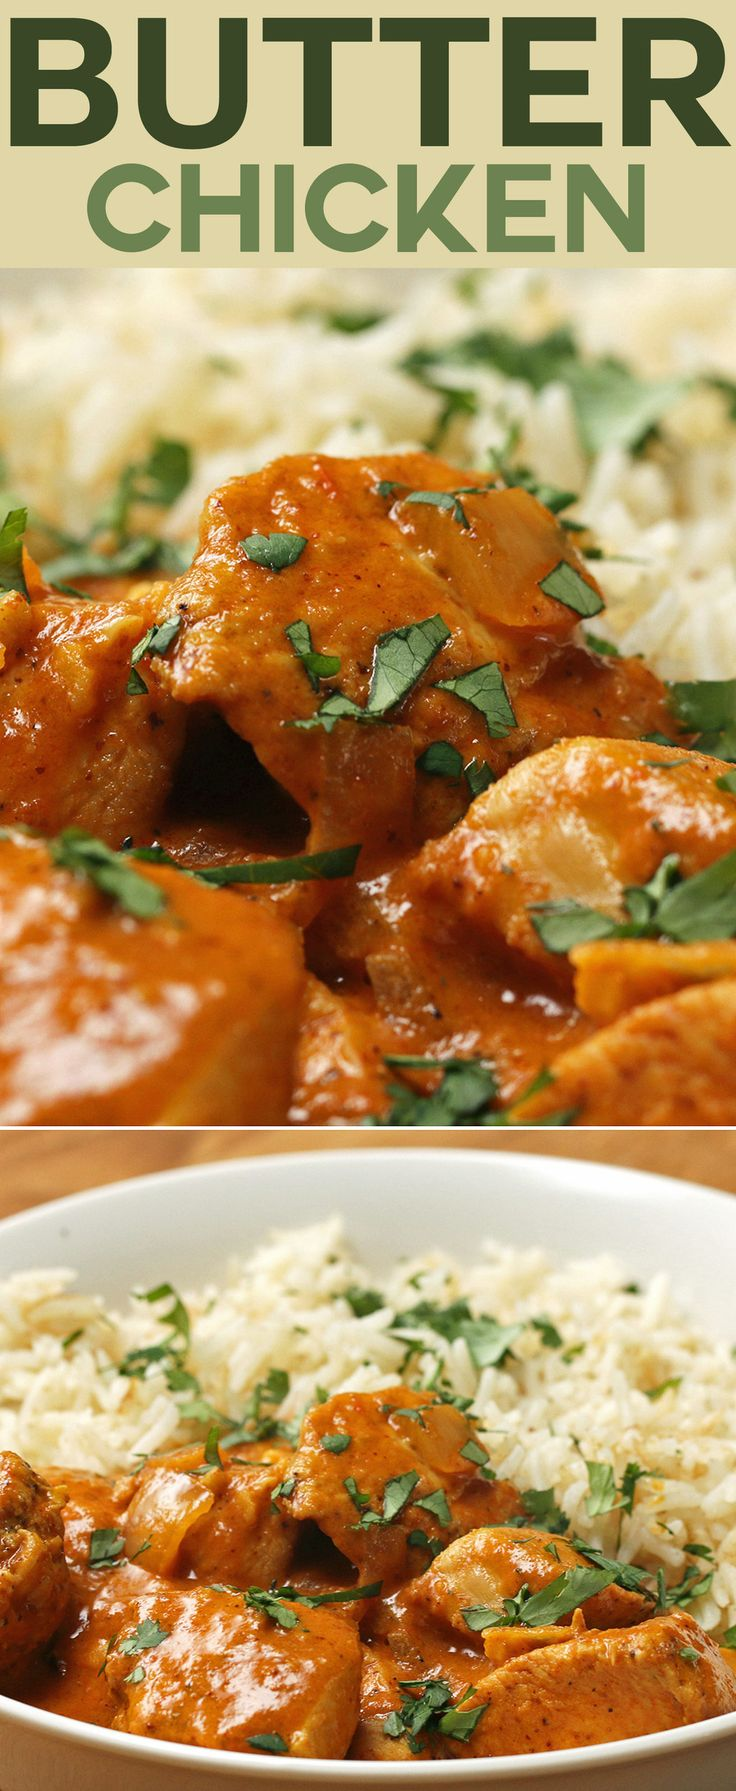 Here's An Easy Recipe For Butter Chicken That You Can Make Tonight